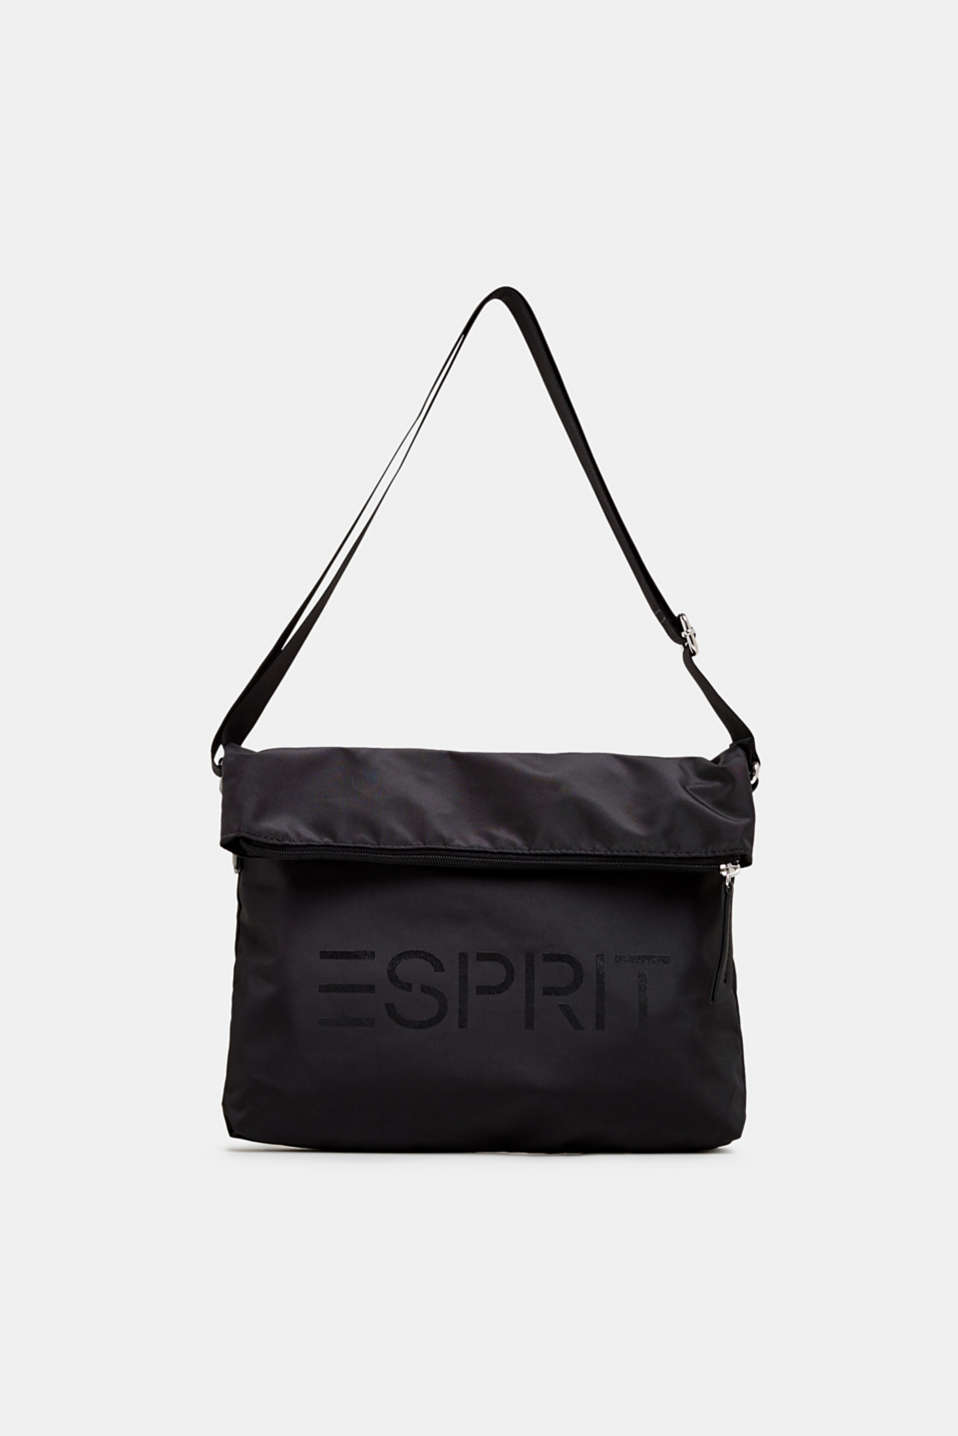 Nylon shopper with a logo and adjustable flap